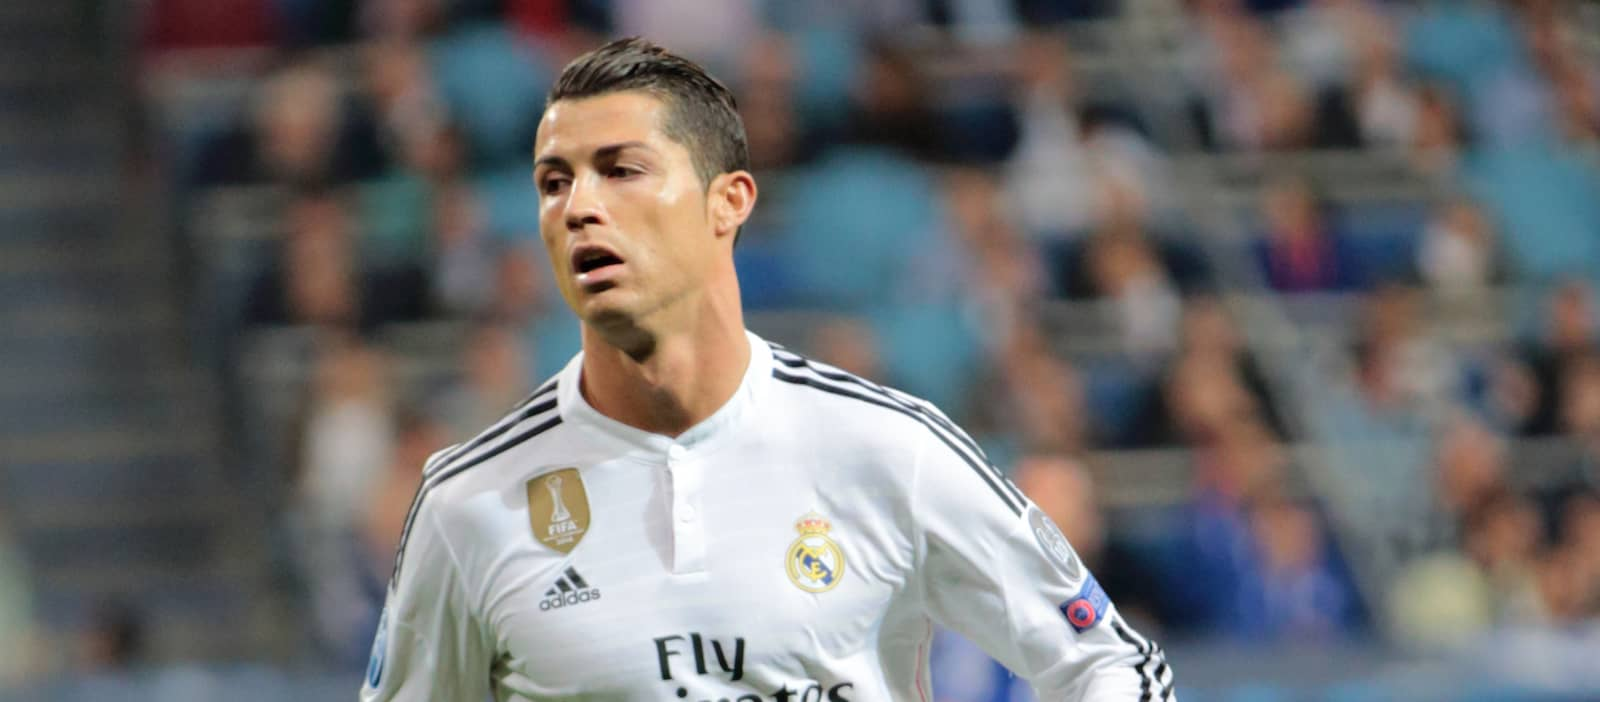 Cristiano Ronaldo would prefer move to Manchester United if he leaves Real Madrid – report